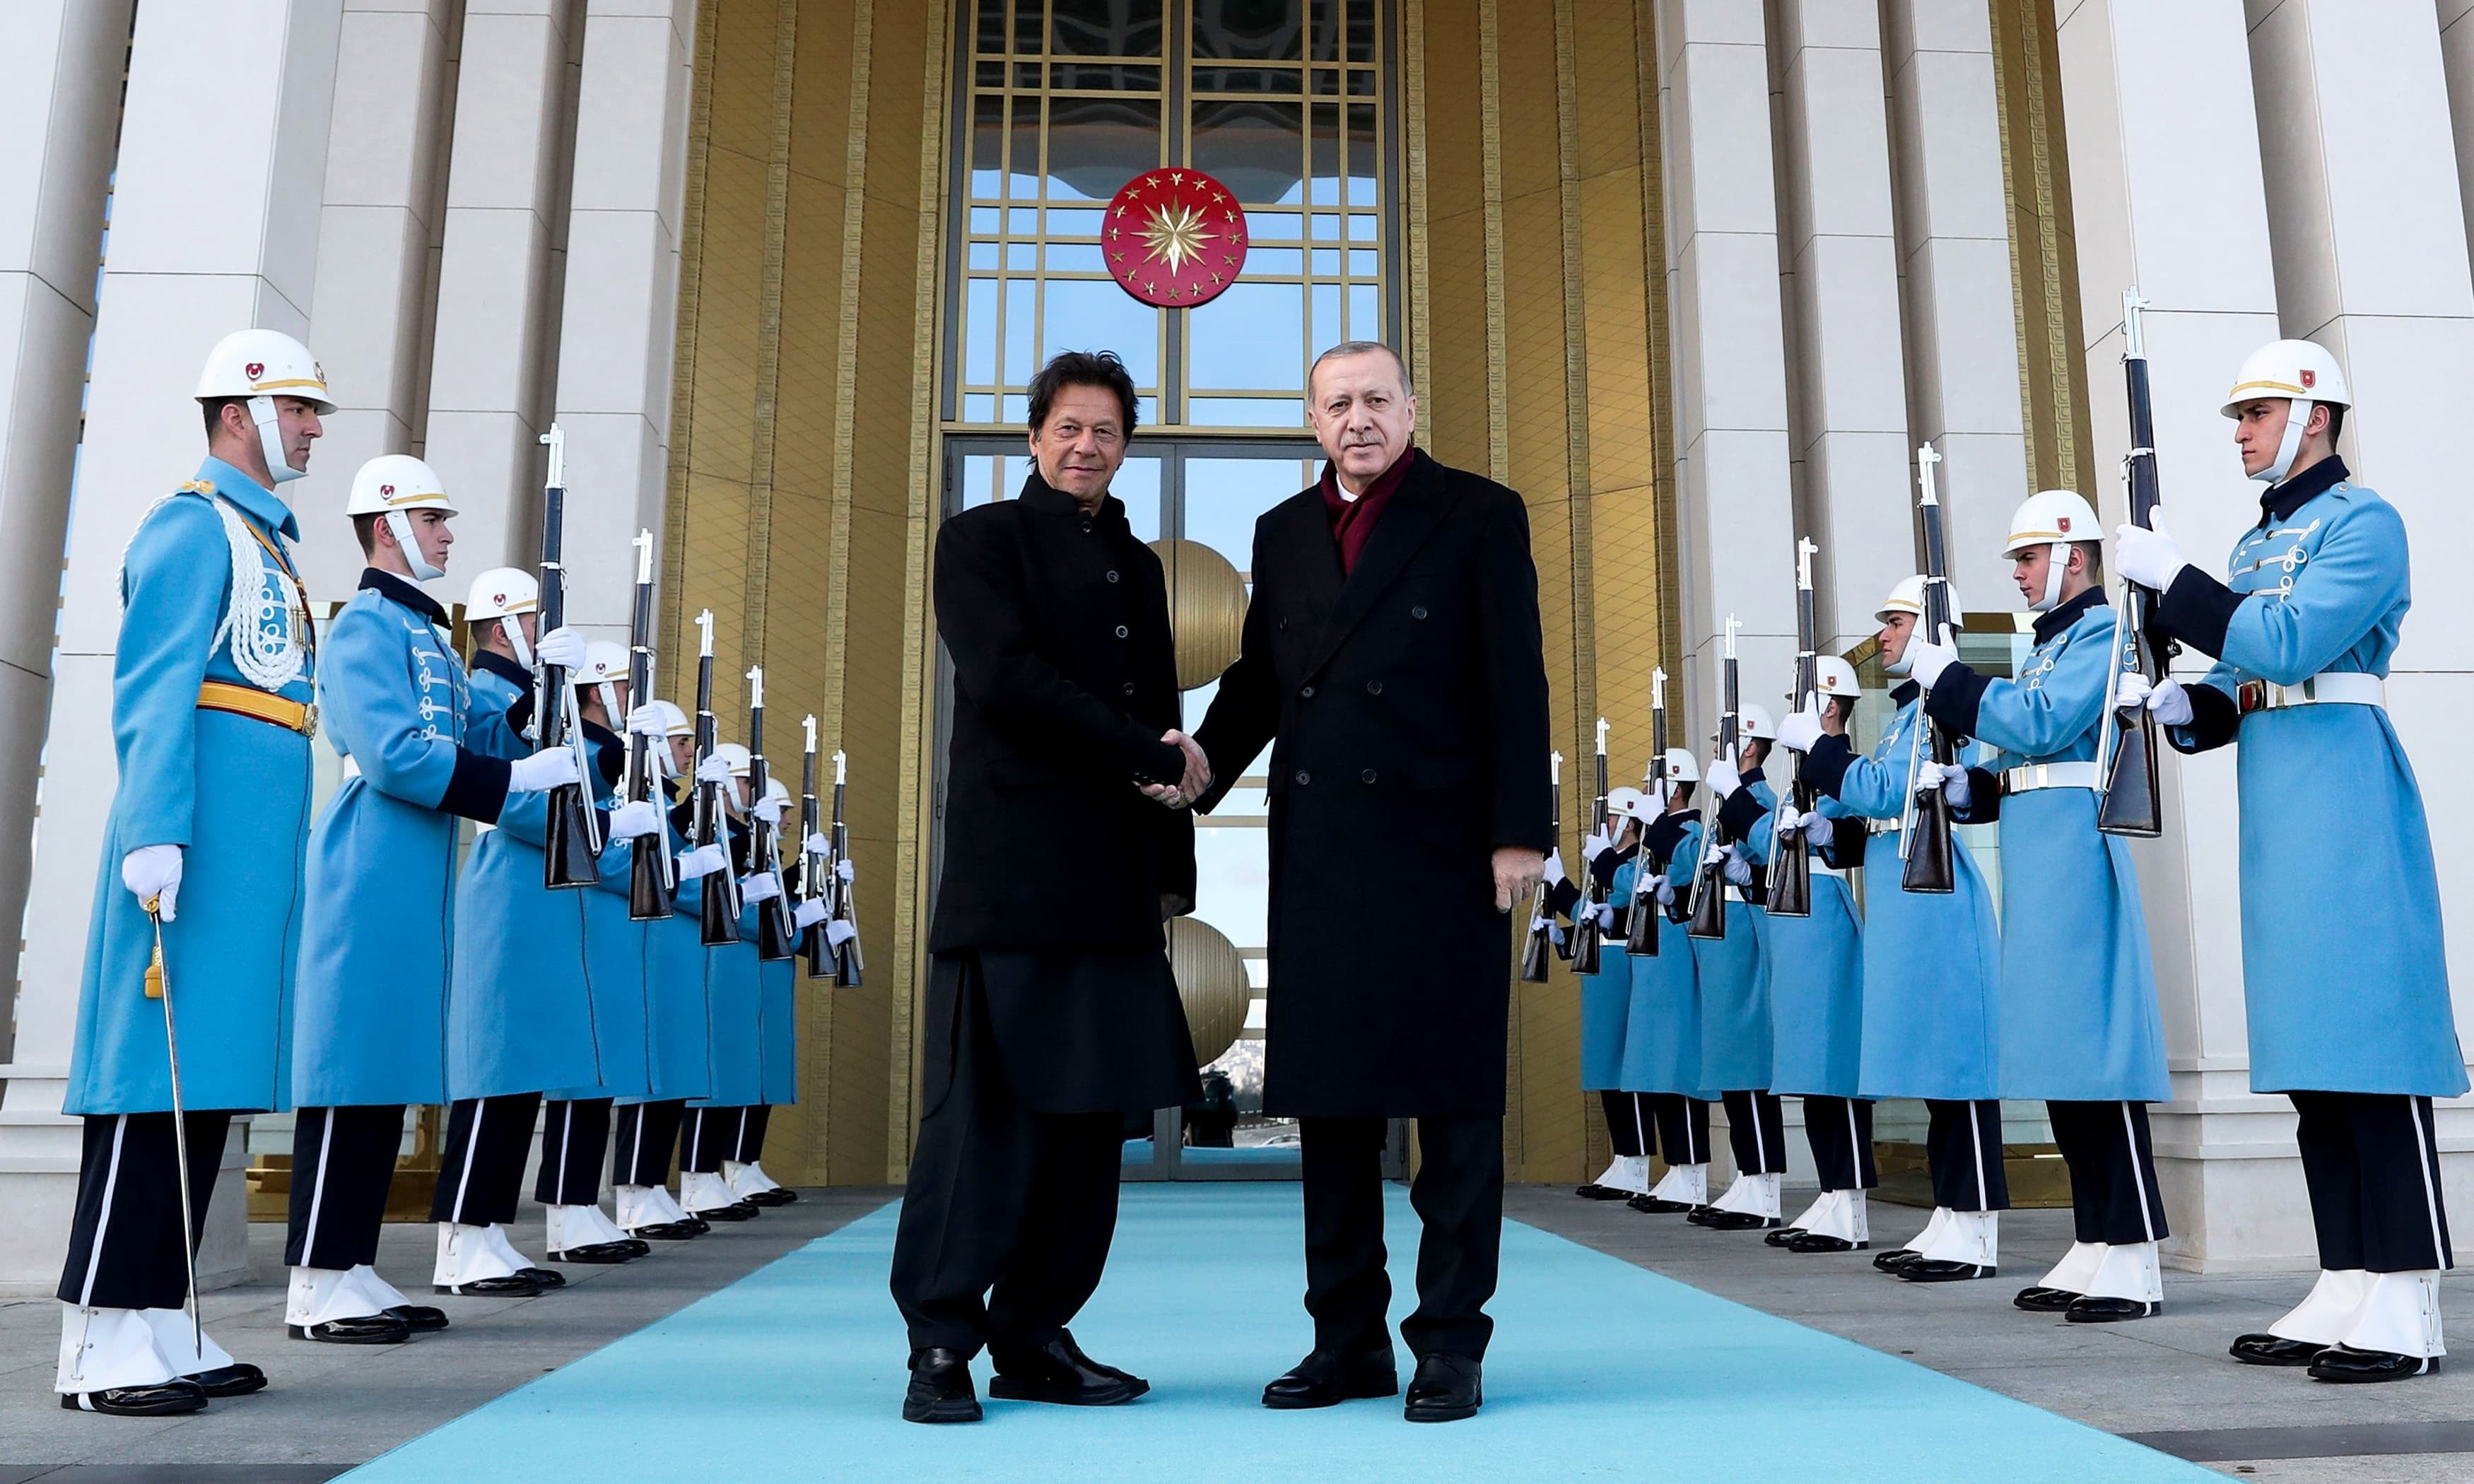 Prime Minister Imran Khan and Turkish President Recep Tayyip Erdogan. — AFP/File